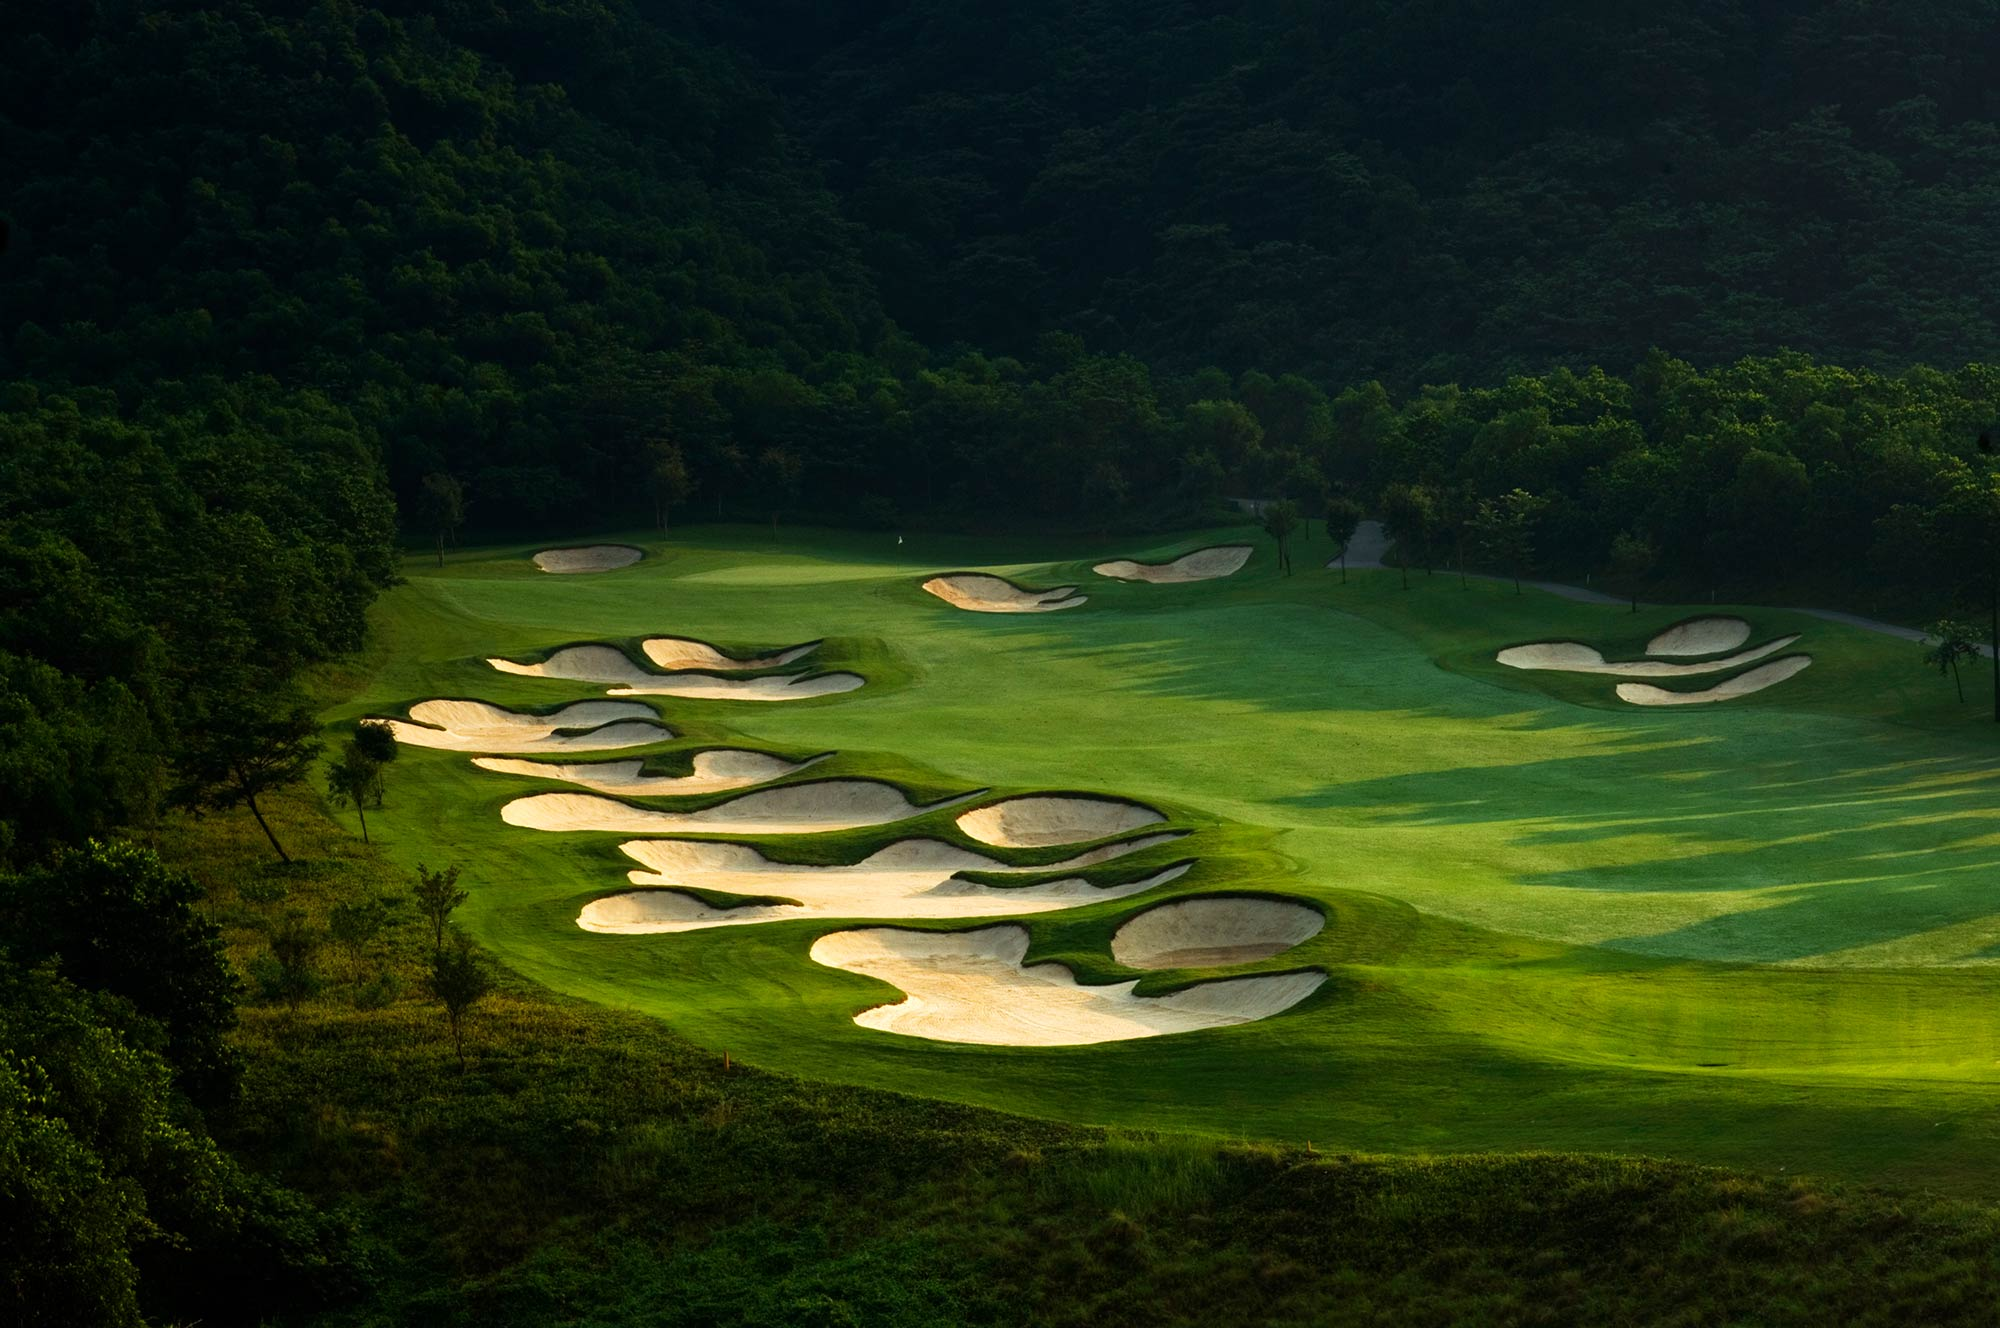 Olazabal-Course-12-Tom-Breazeale.jpg